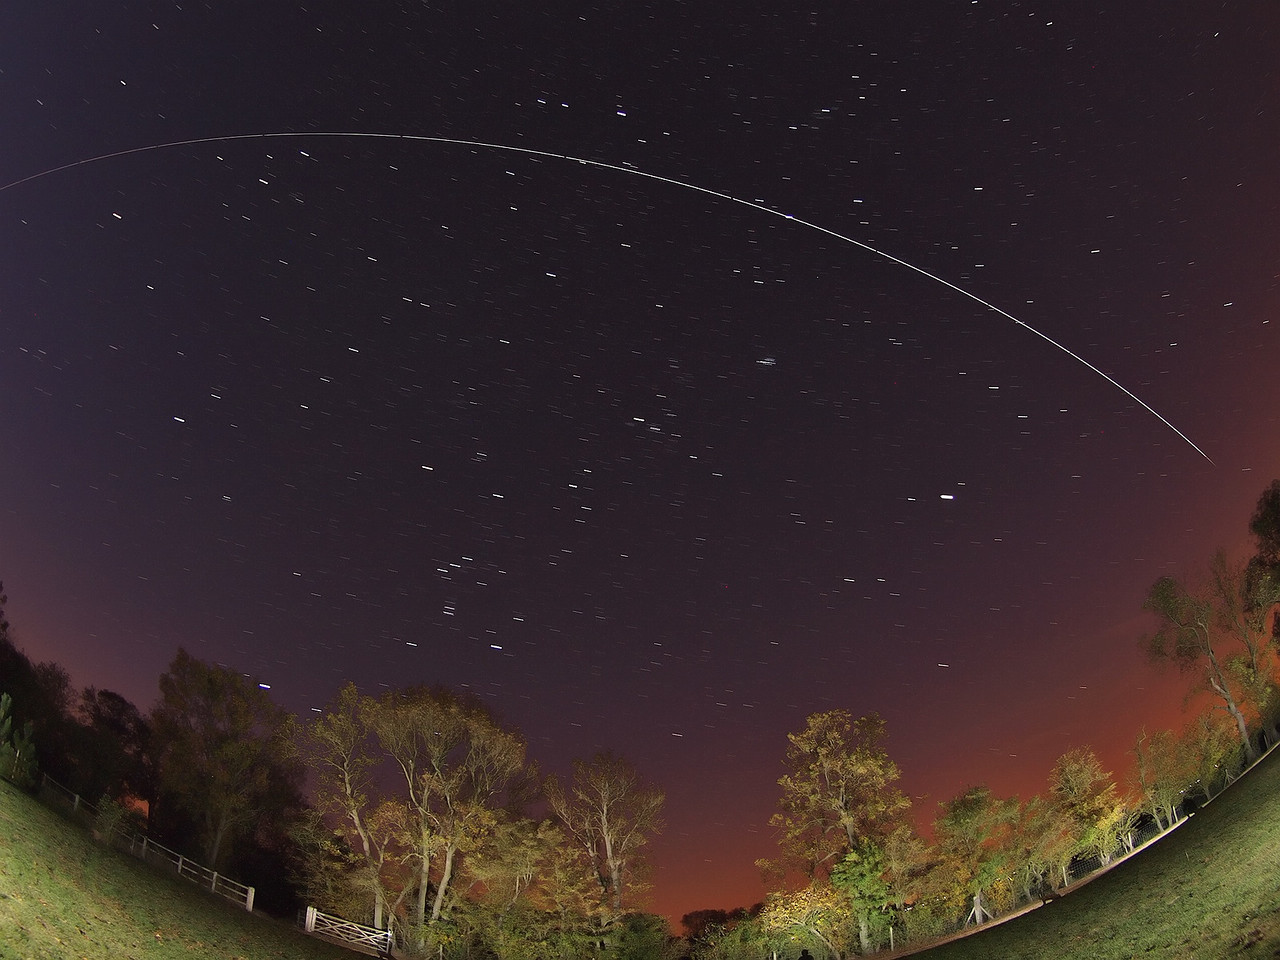 Oct 01 2011 ISS pass from 0547hrs flyby. Approx dozen exposures combined & captured with Olympus E5 & 8mm fisheye.